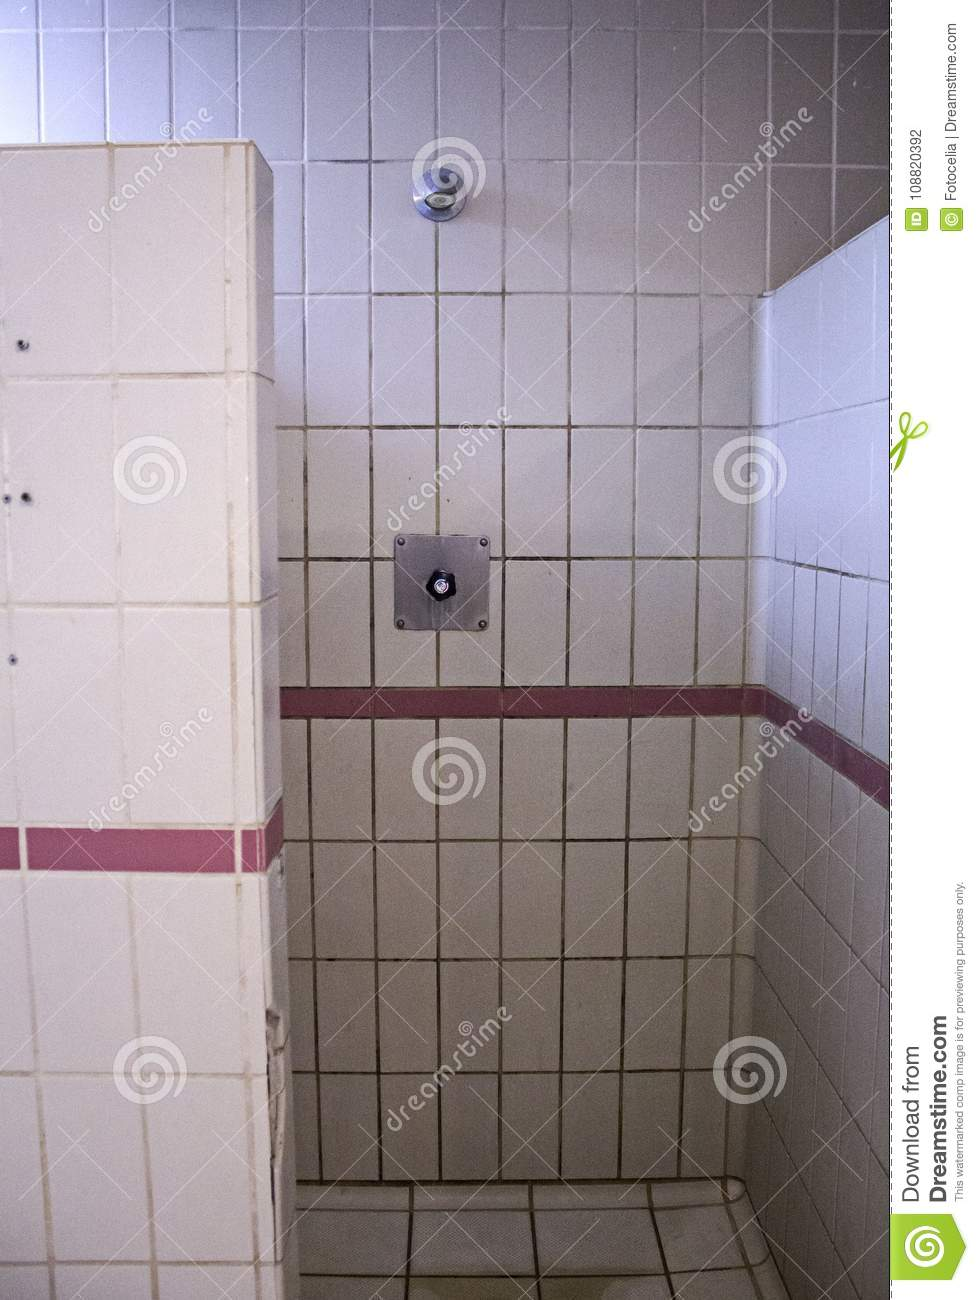 Gym locker room shower stock photo image of protection